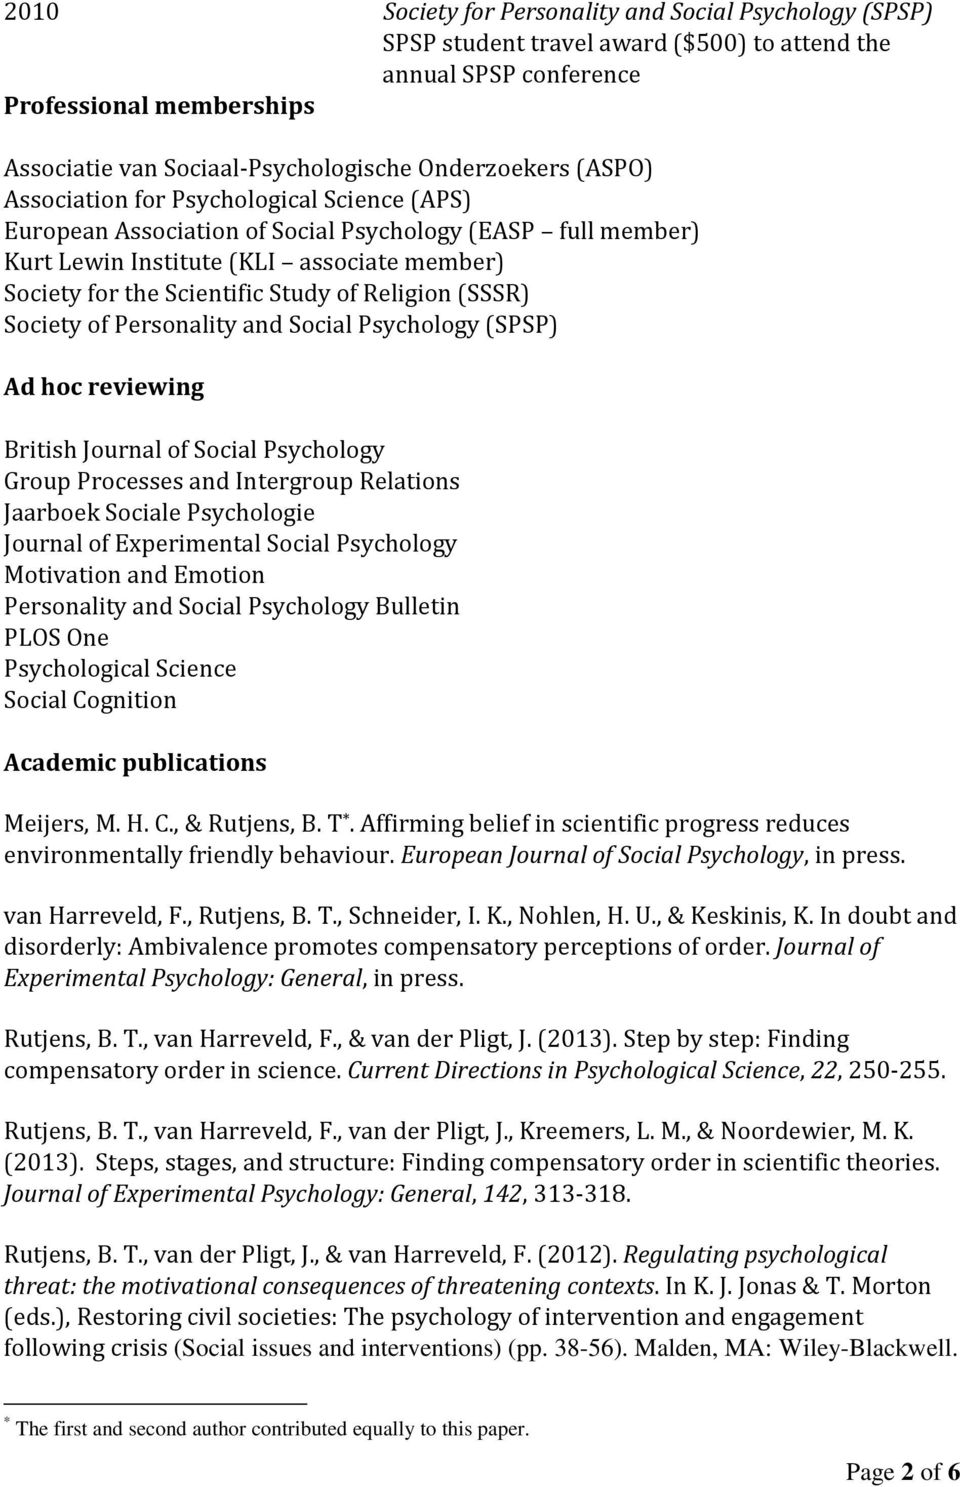 Study of Religion (SSSR) Society of Personality and Social Psychology (SPSP) Ad hoc reviewing British Journal of Social Psychology Group Processes and Intergroup Relations Jaarboek Sociale